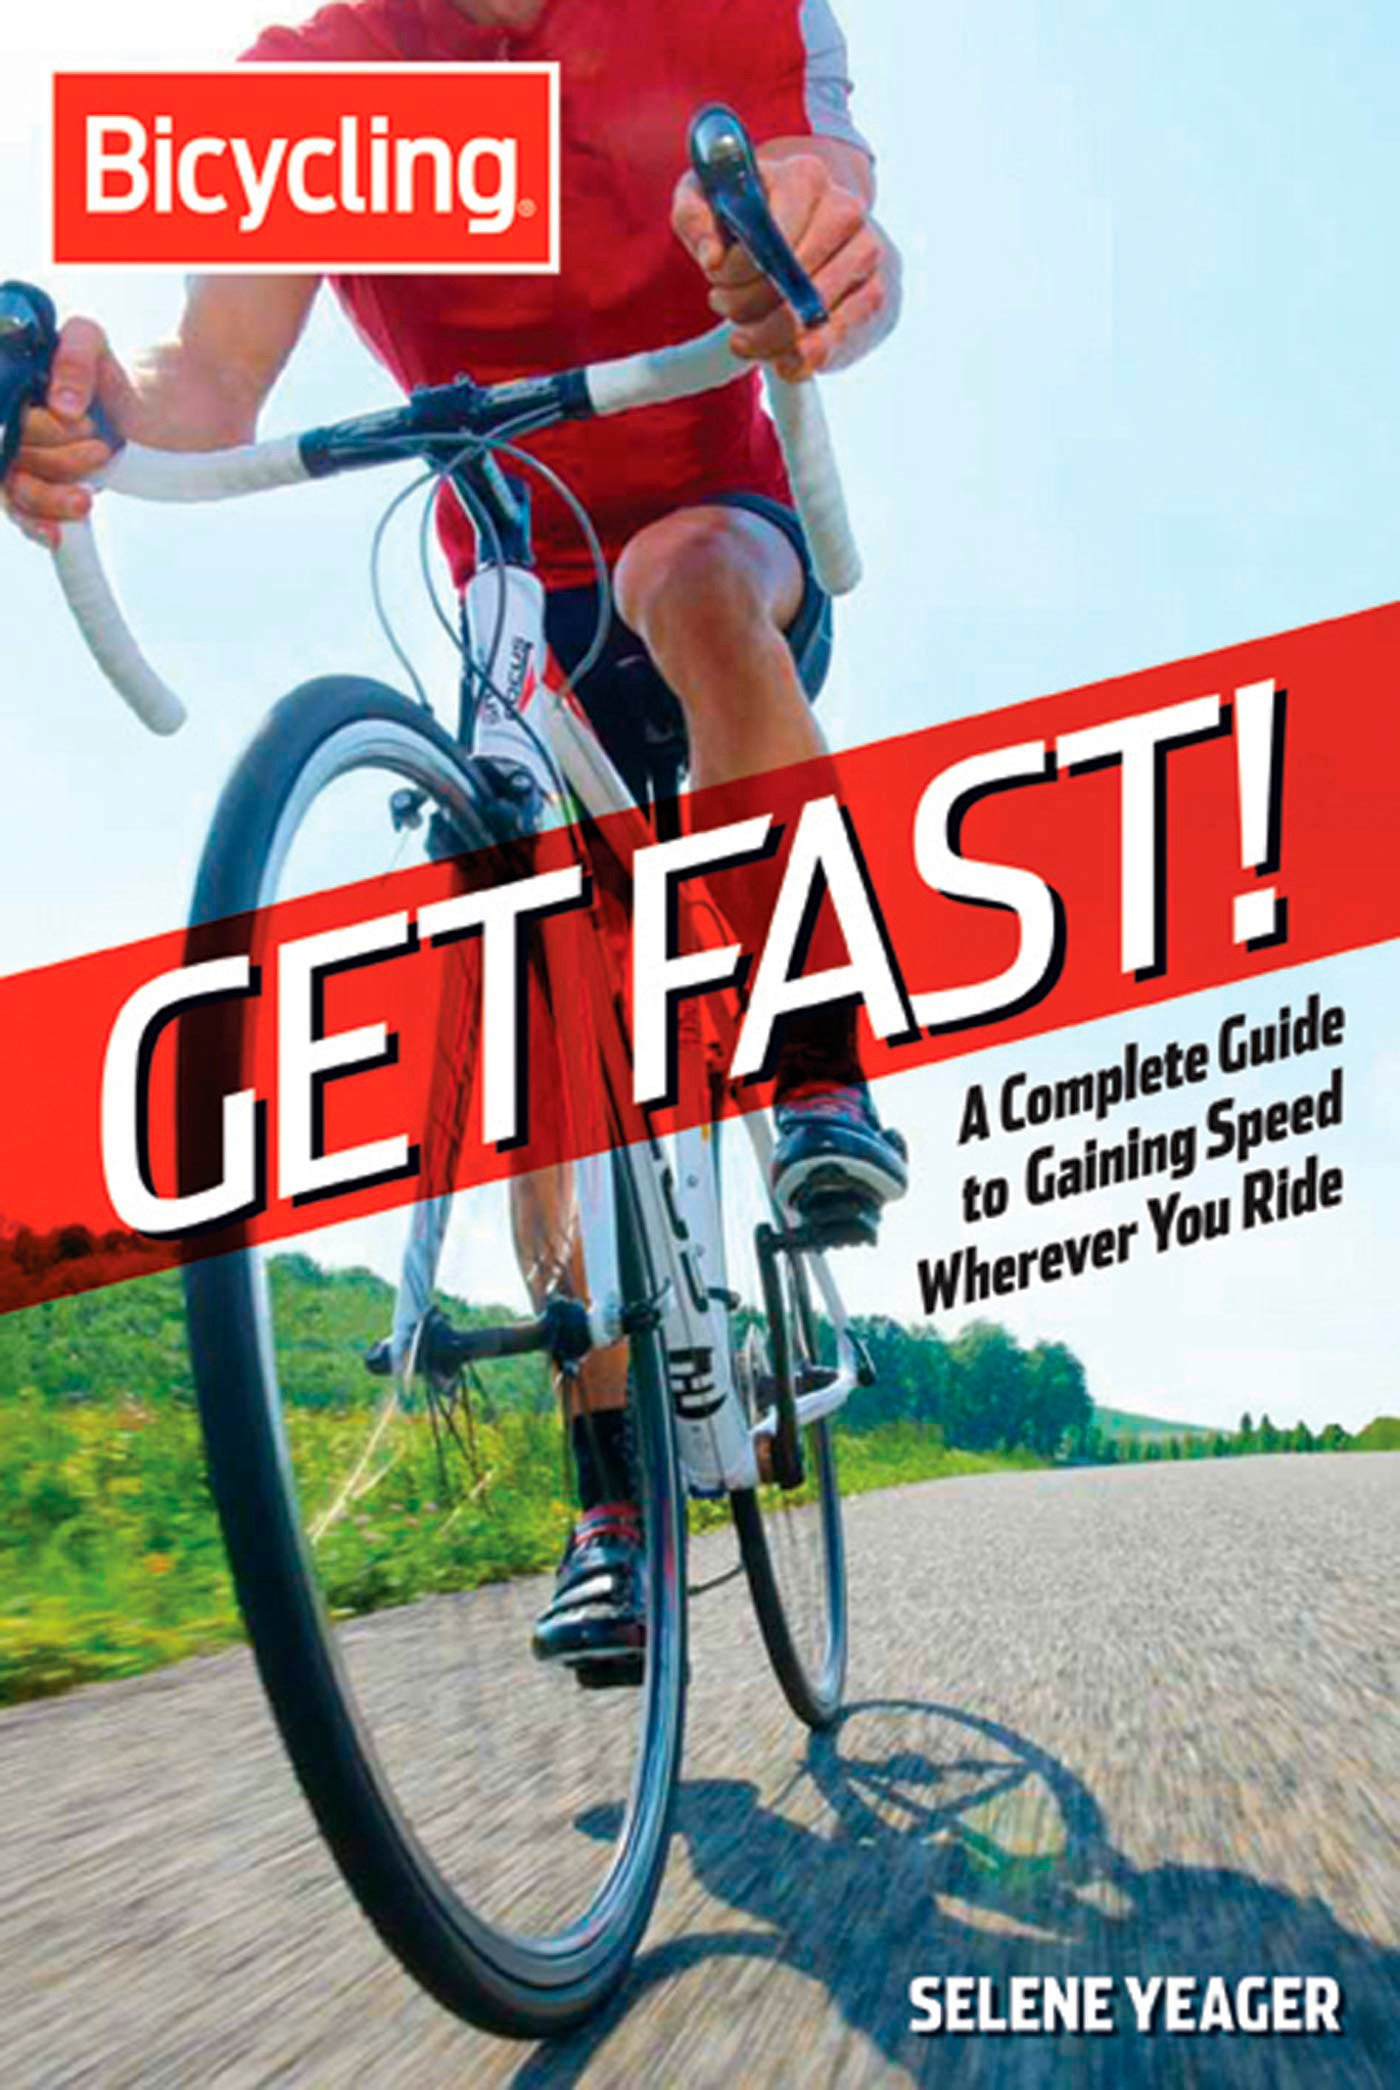 Download Get Fast!: A Complete Guide to Gaining Speed Wherever You Ride (Bicycling) ebook